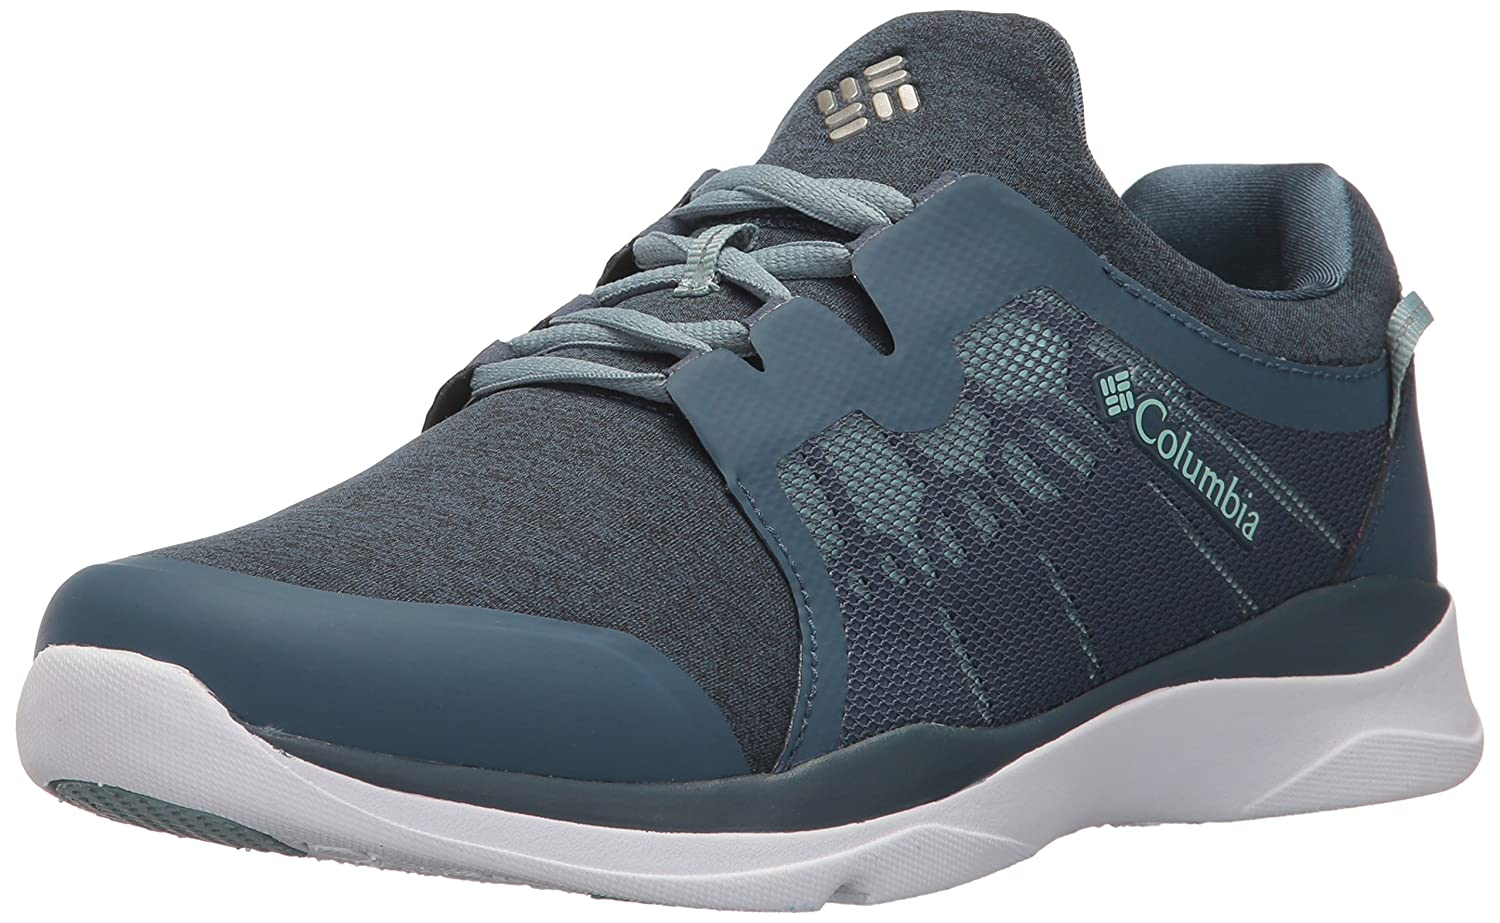 Columbia Women's ATS Trail LF92 Sneaker B01MRZH7SP 5.5 B(M) US|Whale, Spray